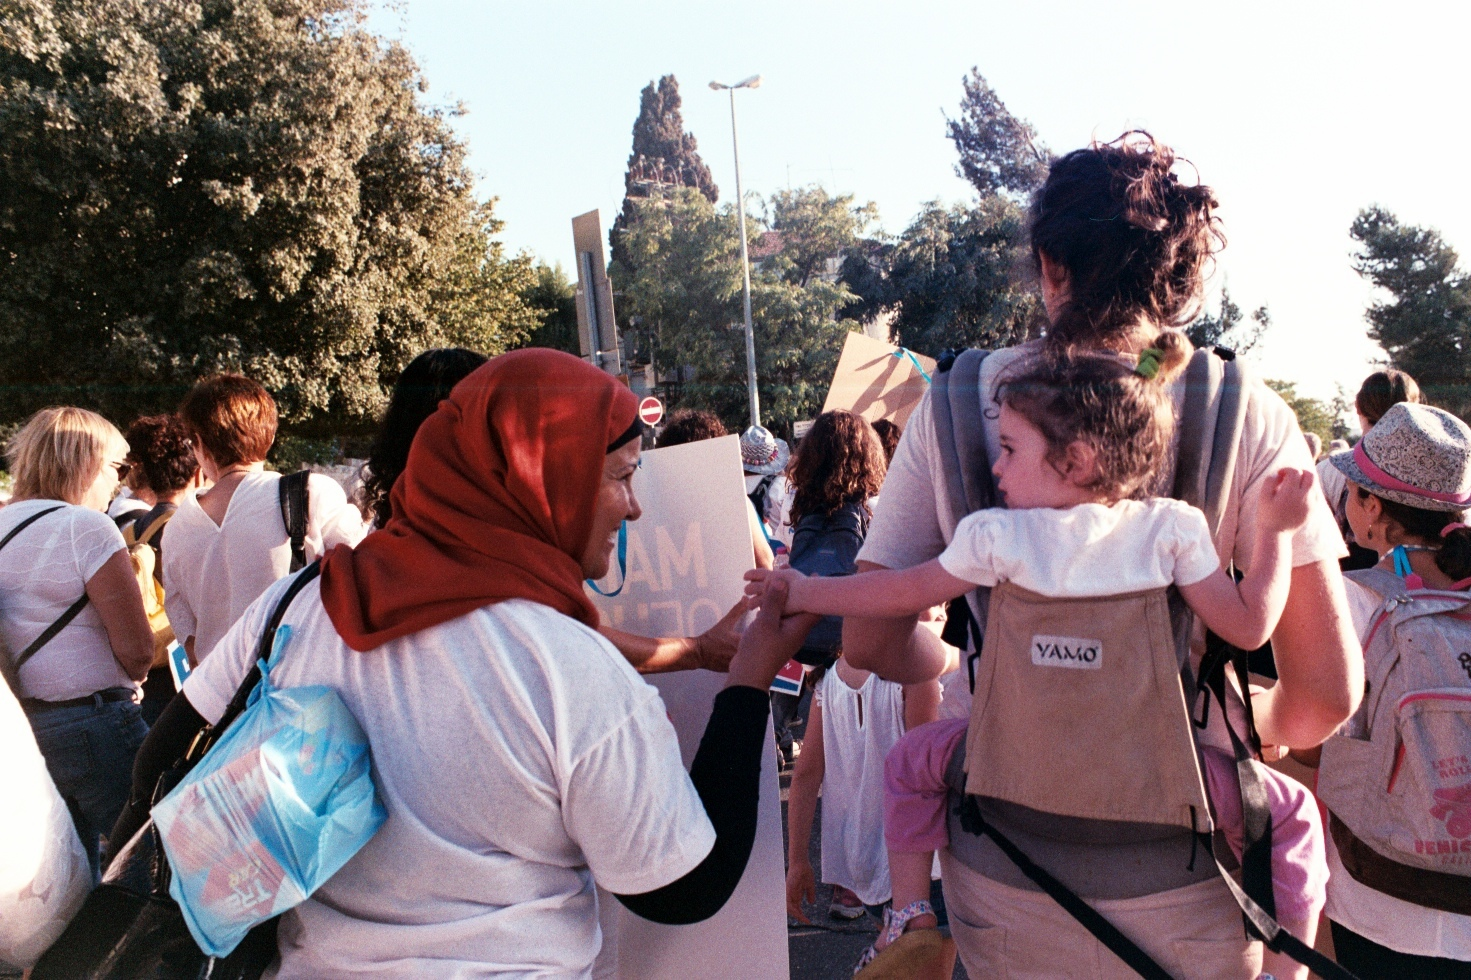 Women Wage Peace, March of Hope, Jerusalem, October 2016.